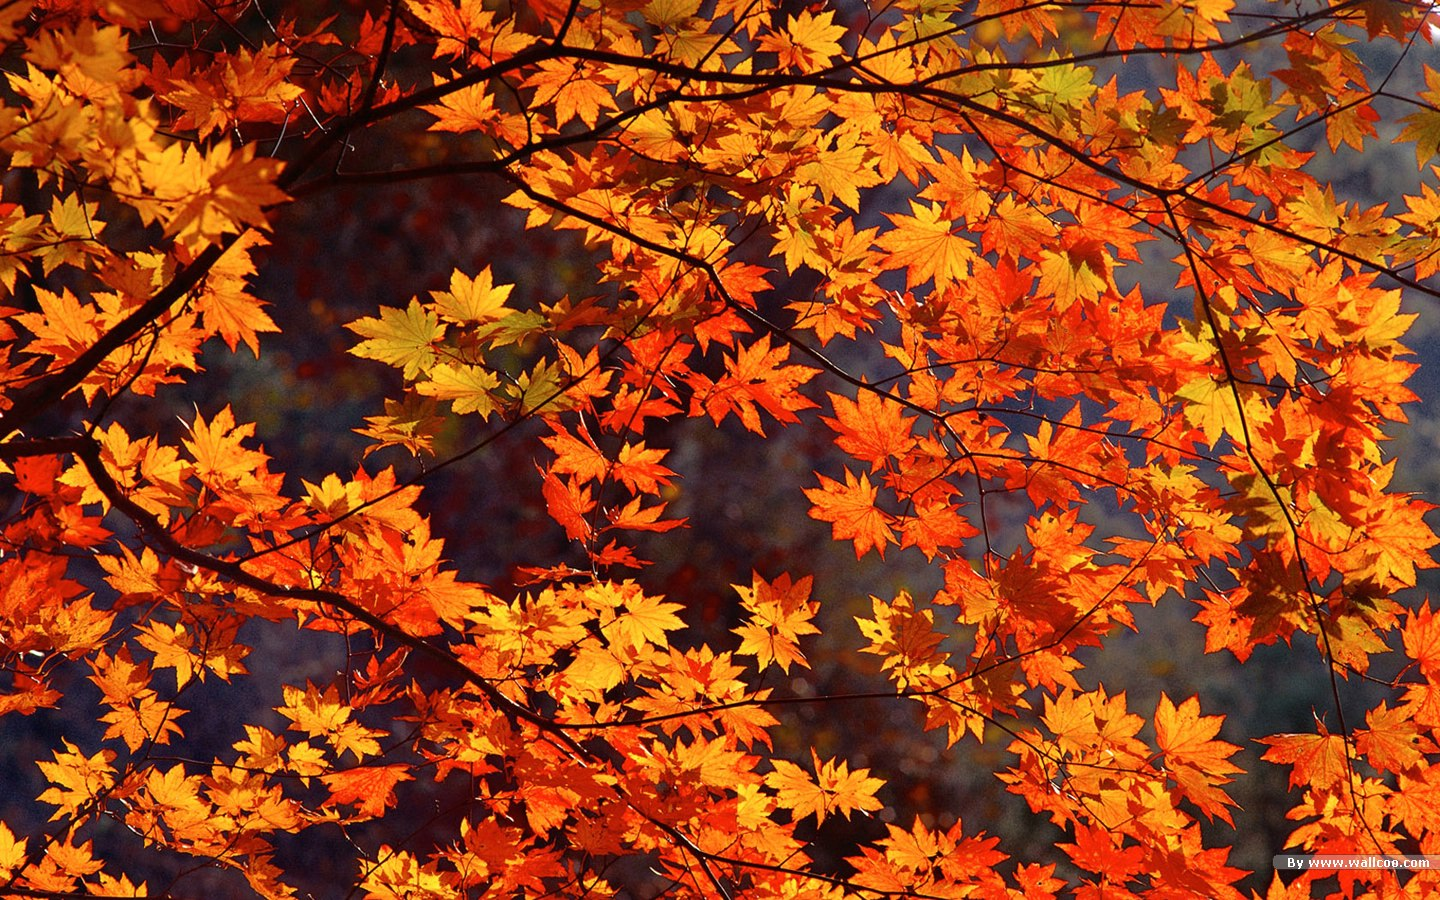 Autumn Desktop Wallpaper Free